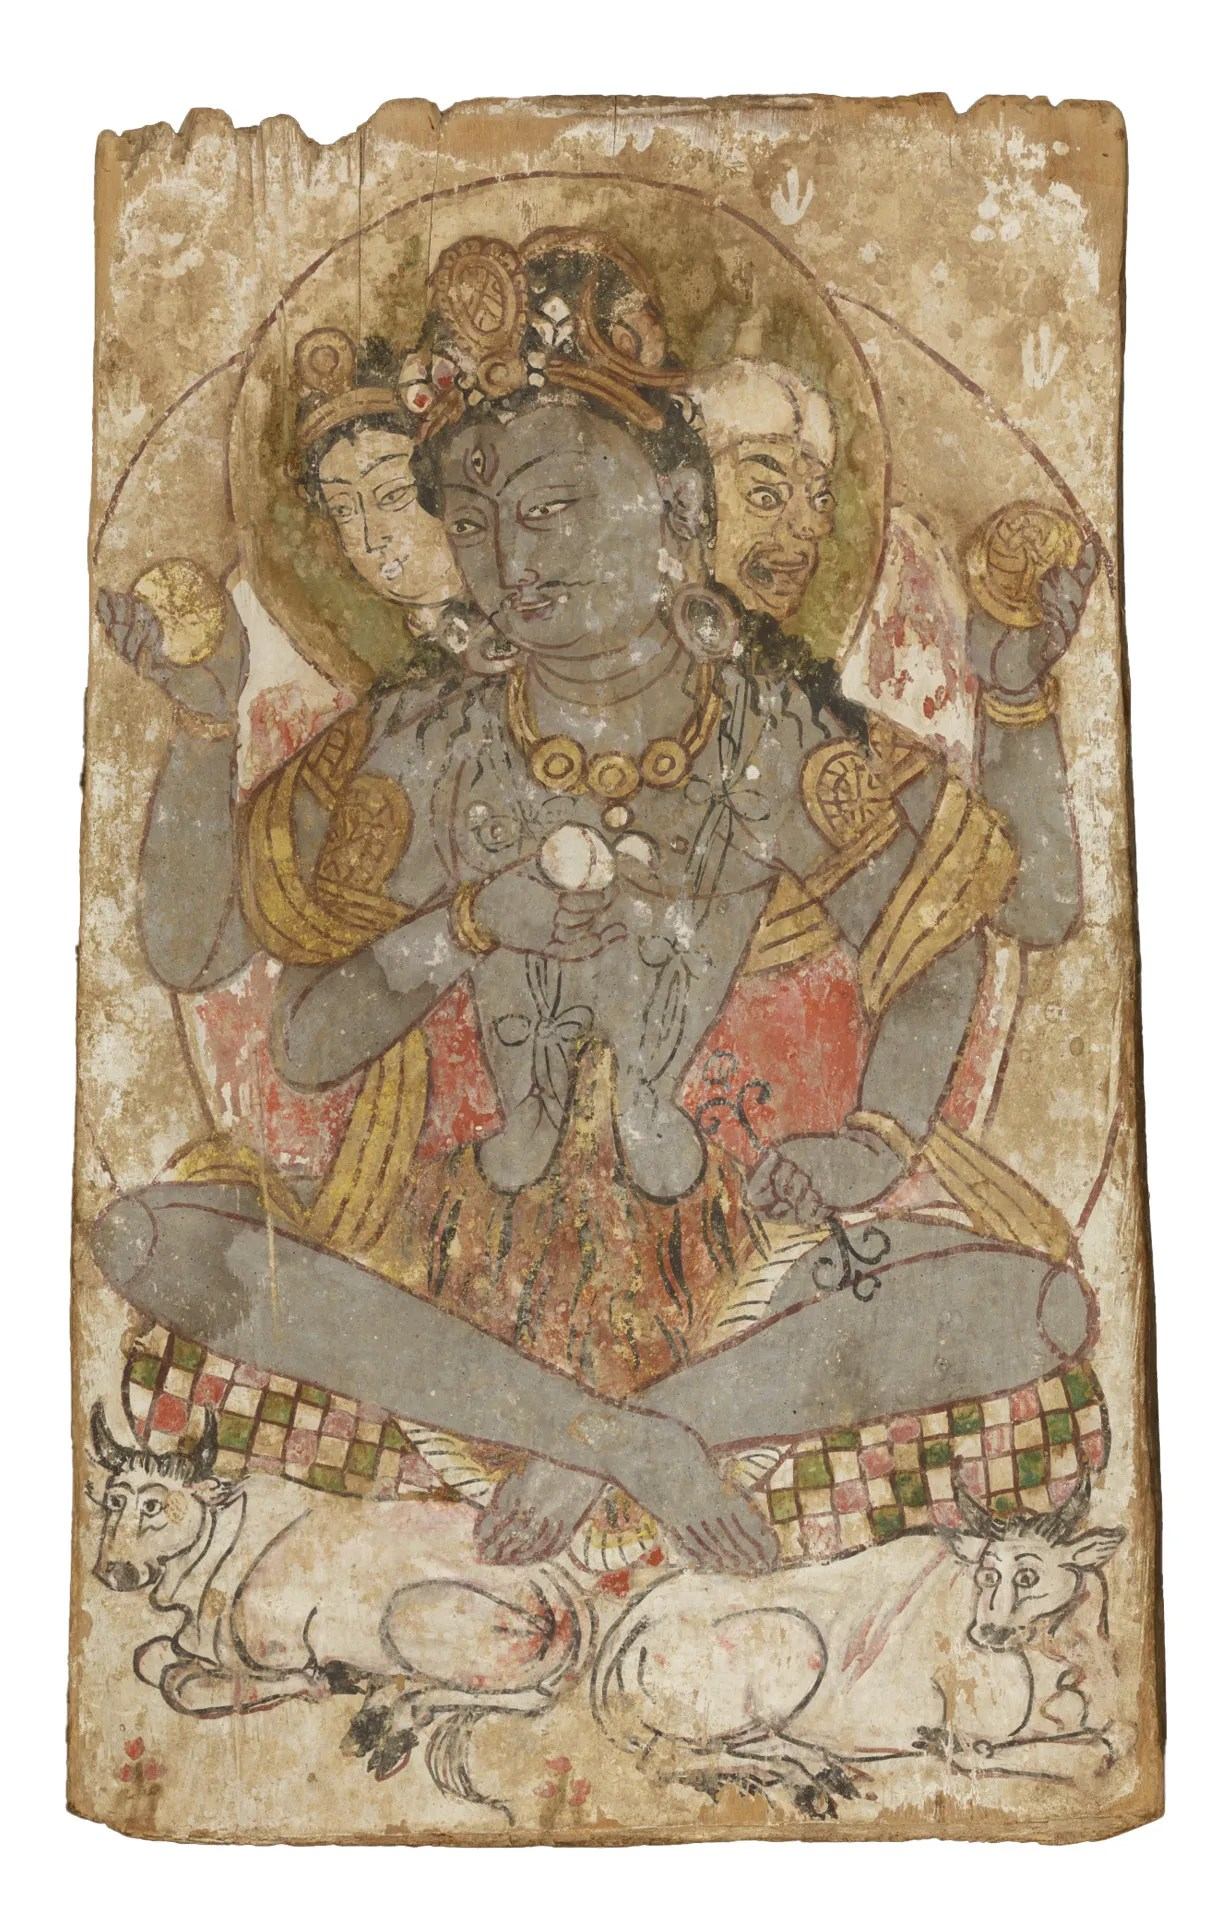 OPPOSITE A Mughal-style painting of a woman visiting two Nath yoginis, North India, c.1750. Gouache on paper. Size: 29 x 21cm ABOVE Votive panel depicting Shiva as Maheshvara, a protector deity in Tantric Buddhism, from Dandan Oilik in Khotan, north-west China, 7th-8th century. Painted wood. Size: 33.5 x 21x 2.5cm